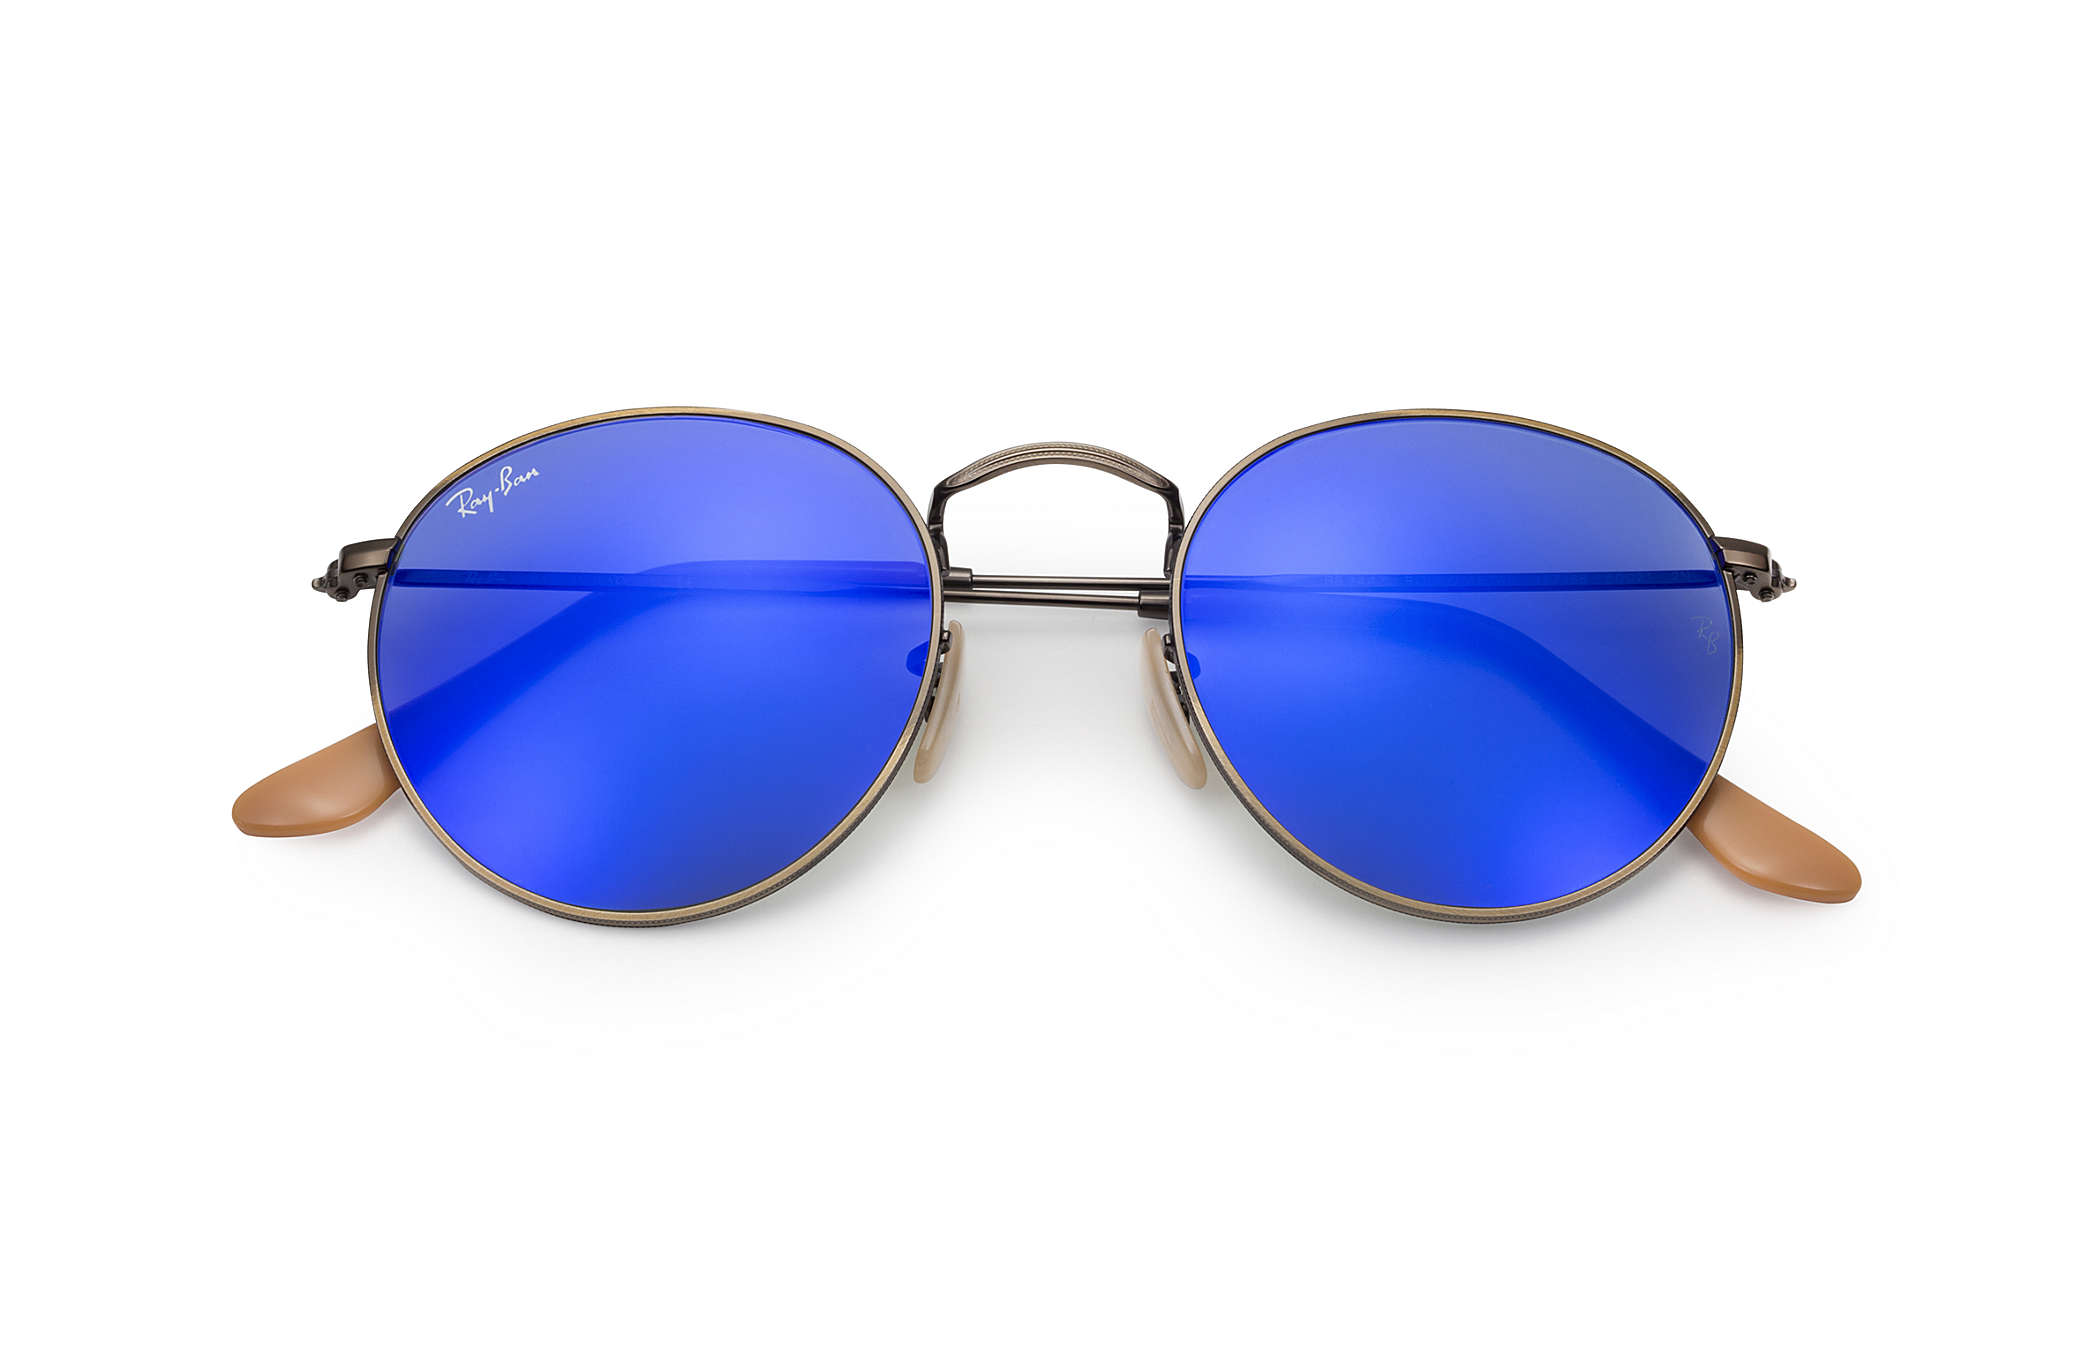 ad3a9f95234 Ray-Ban Round Flash Lenses RB3447 Bronze-Copper - Metal - Blue ...